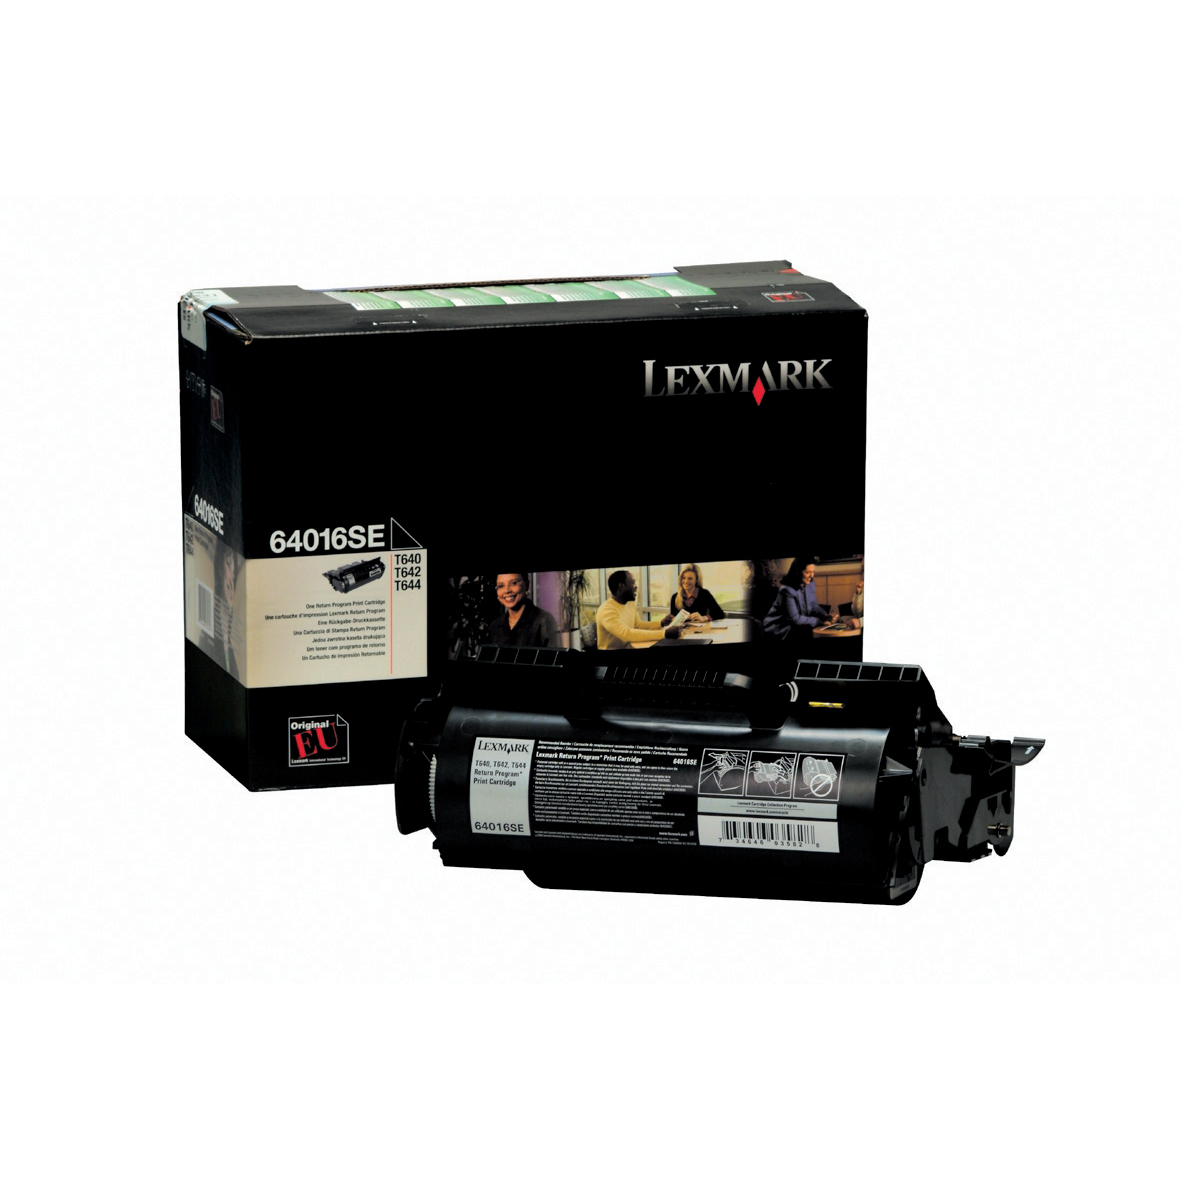 Lexmark T630/T632/T634 Laser Toner Cartridge Return Program Page Life 5000pp Black Ref 12A7460